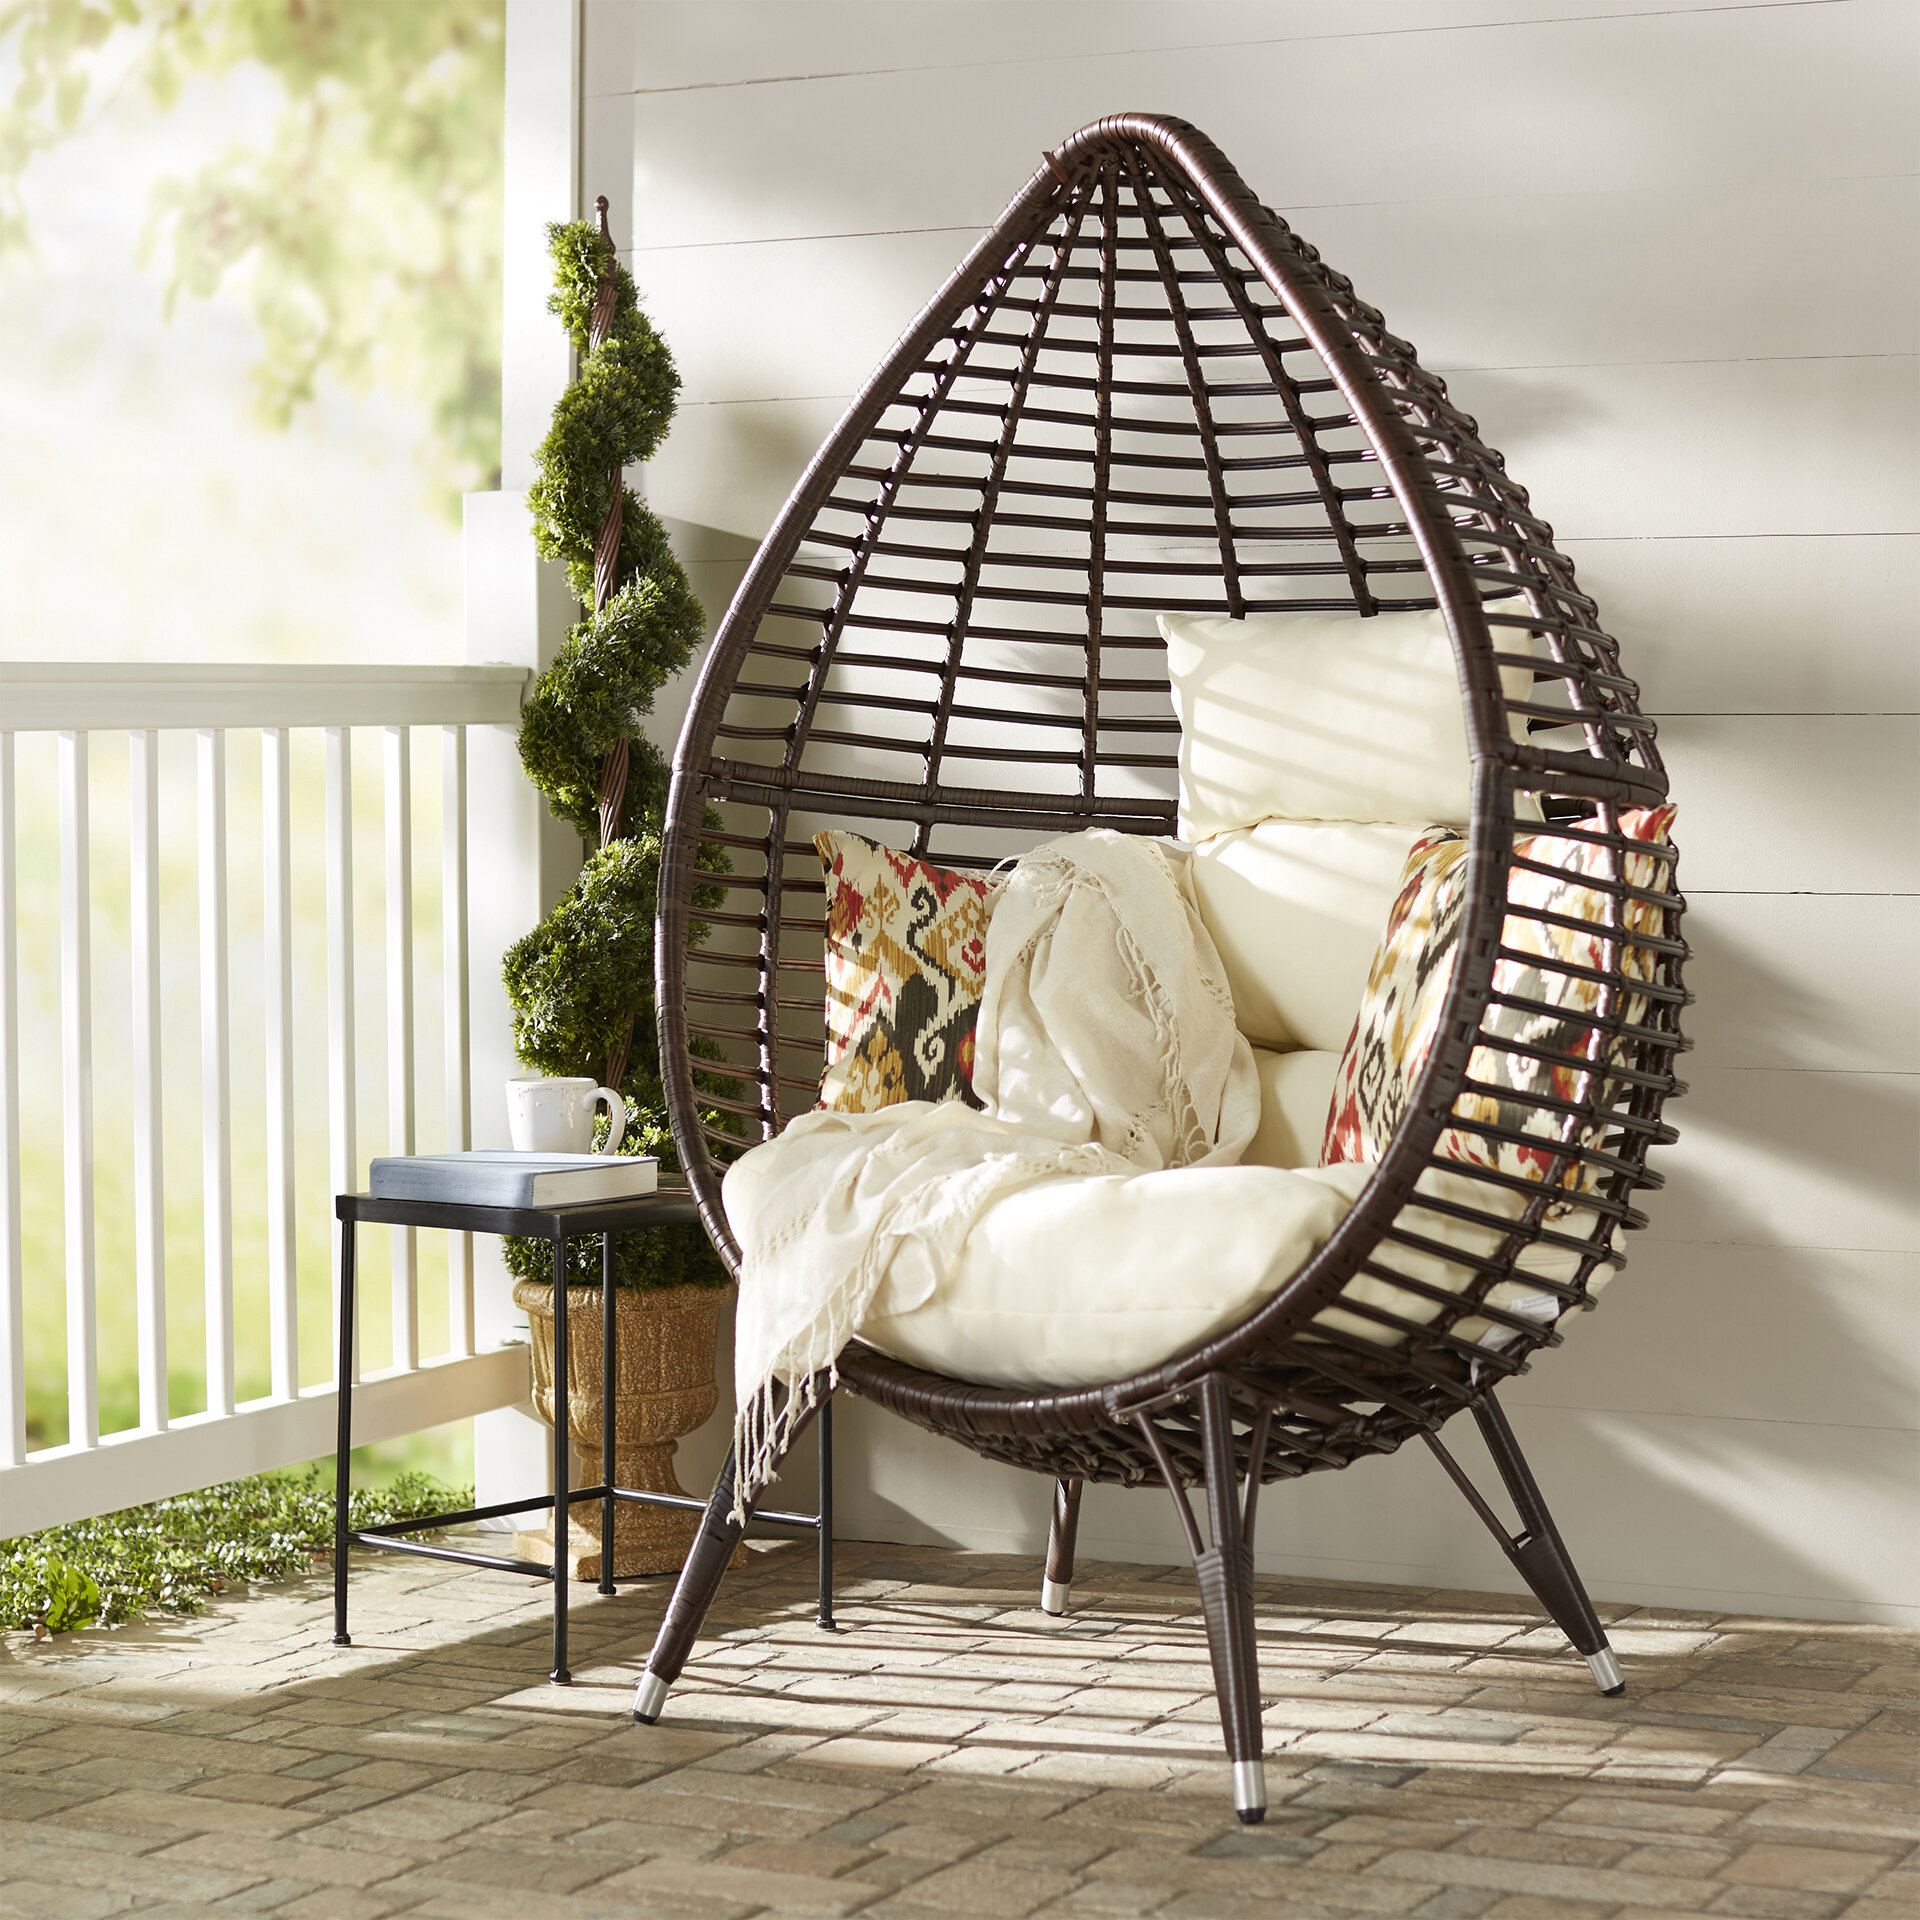 Prime Teardrop Patio Chair With Cushions Home Interior And Landscaping Palasignezvosmurscom